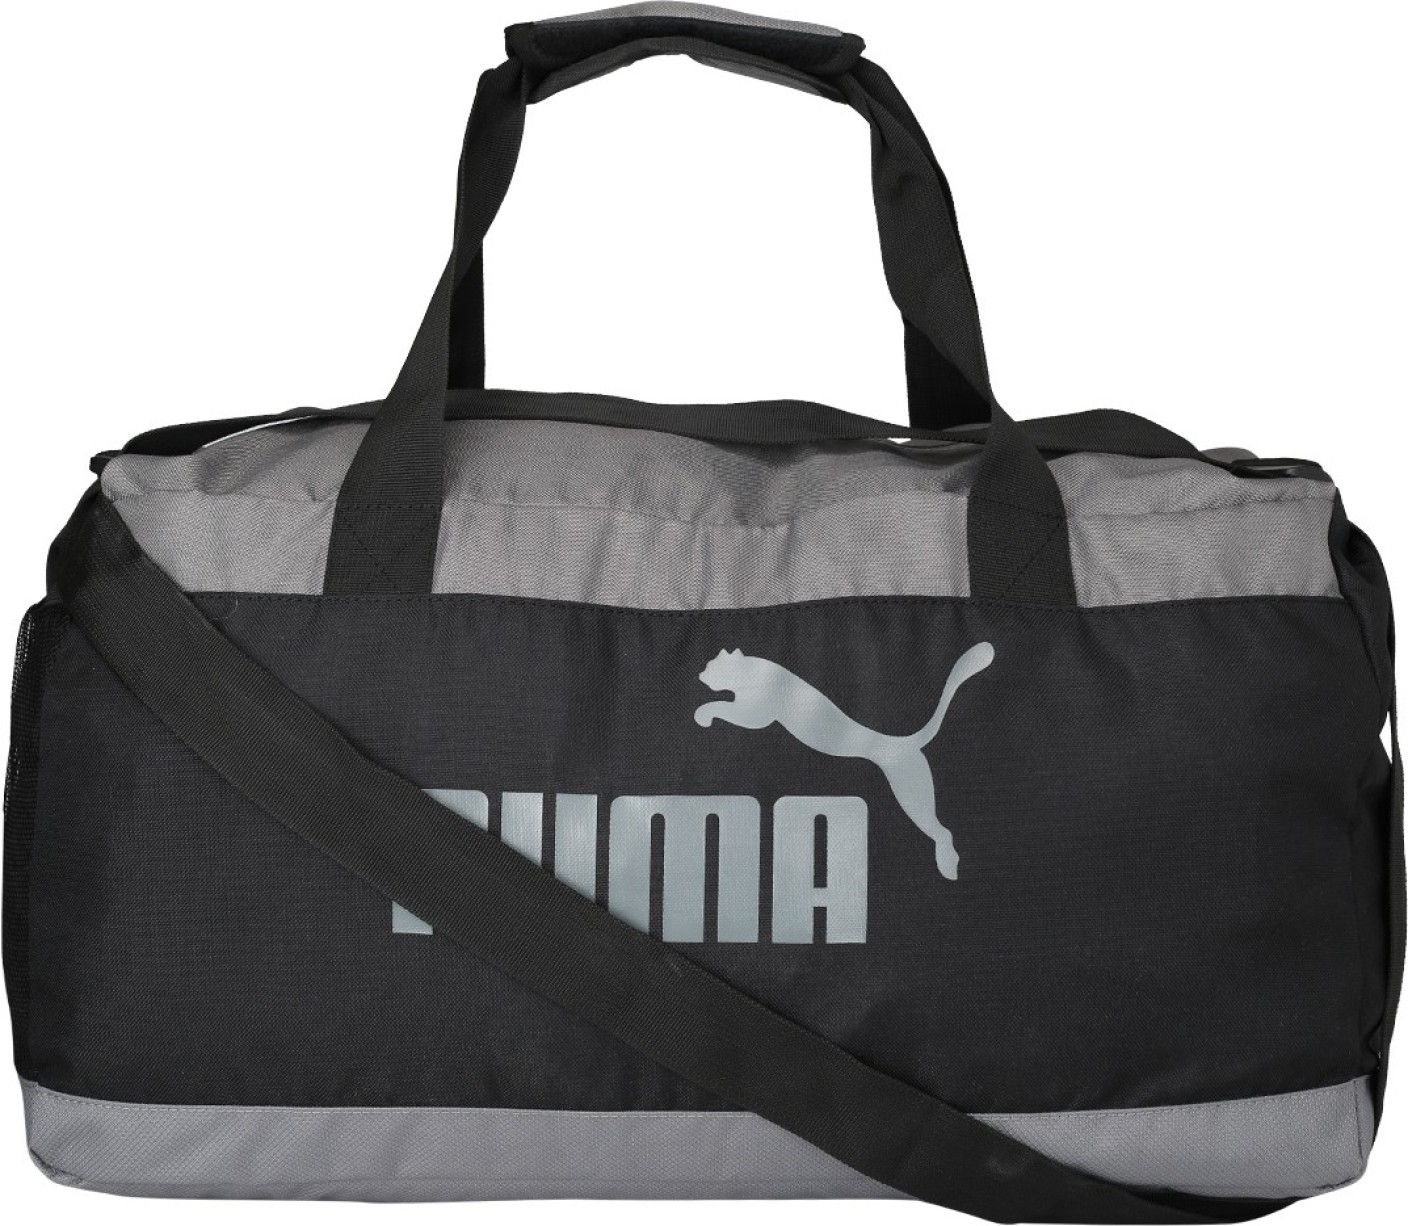 Gym Bag Flipkart: Puma PUMA Box Bag Gym Bag Puma Black-Quiet Shade